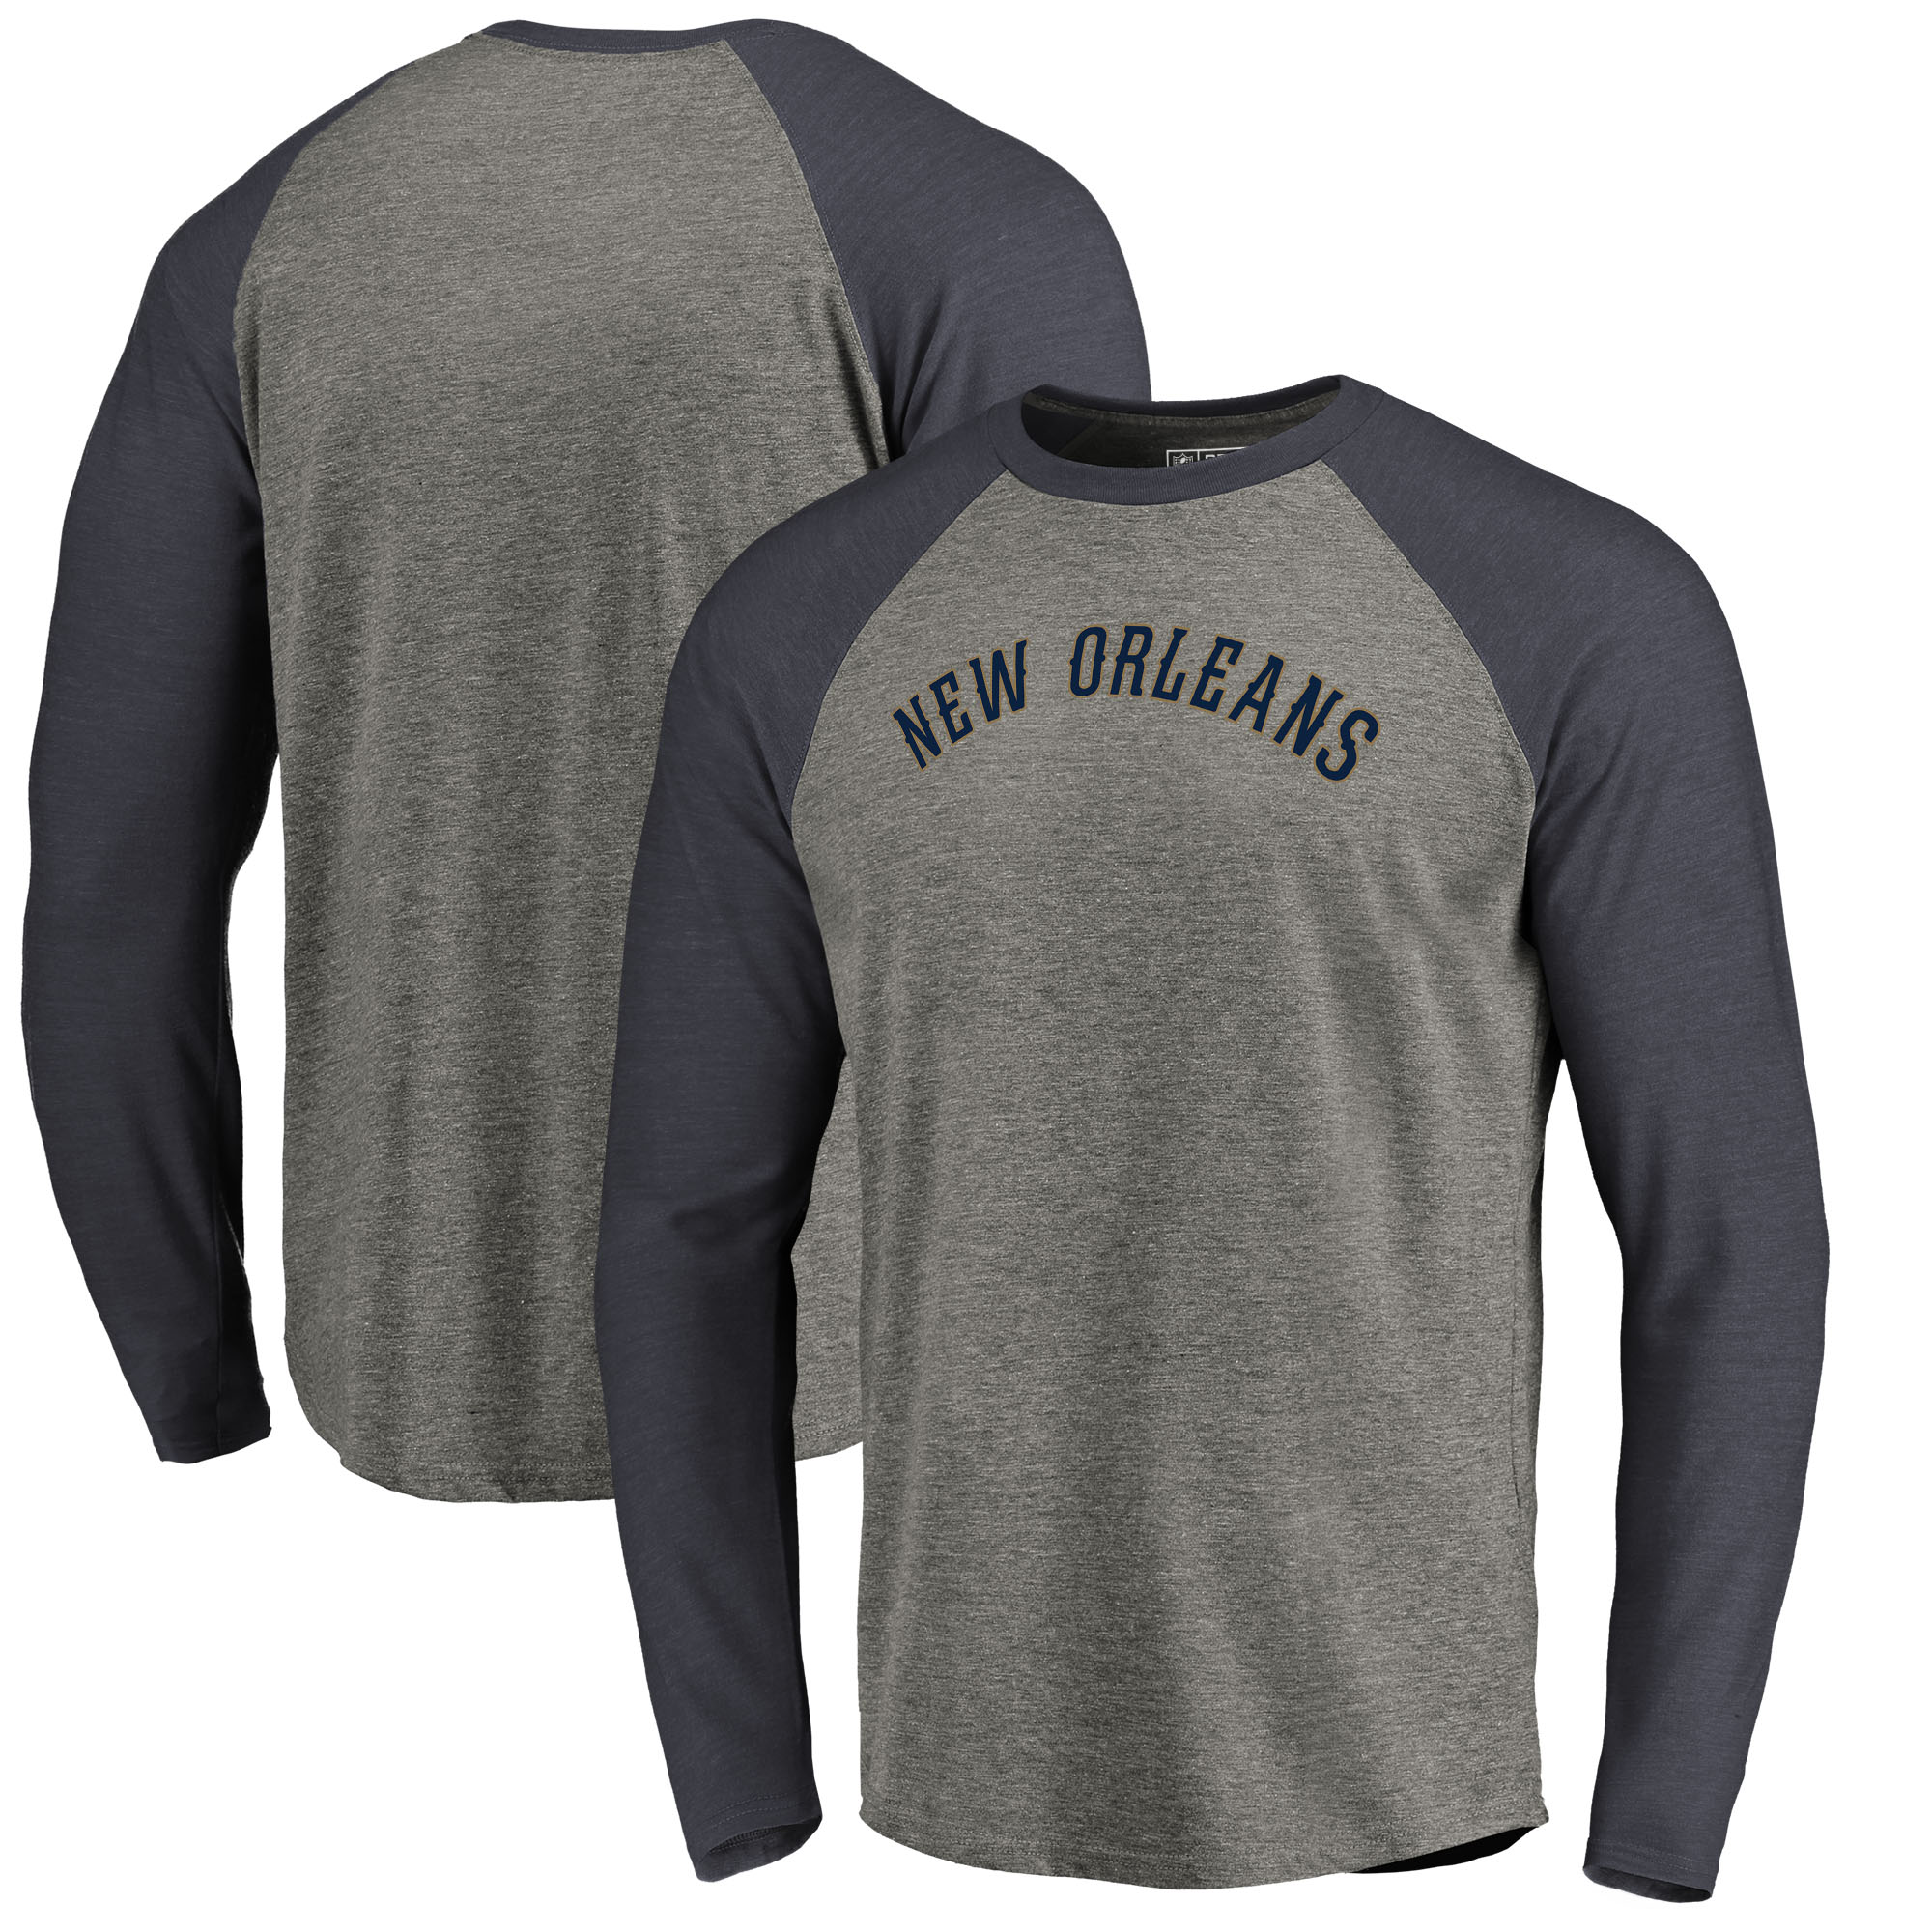 New Orleans Pelicans Fanatics Branded Primary Wordmark Tri-Blend Long Sleeve T-Shirt - Heathered Gray